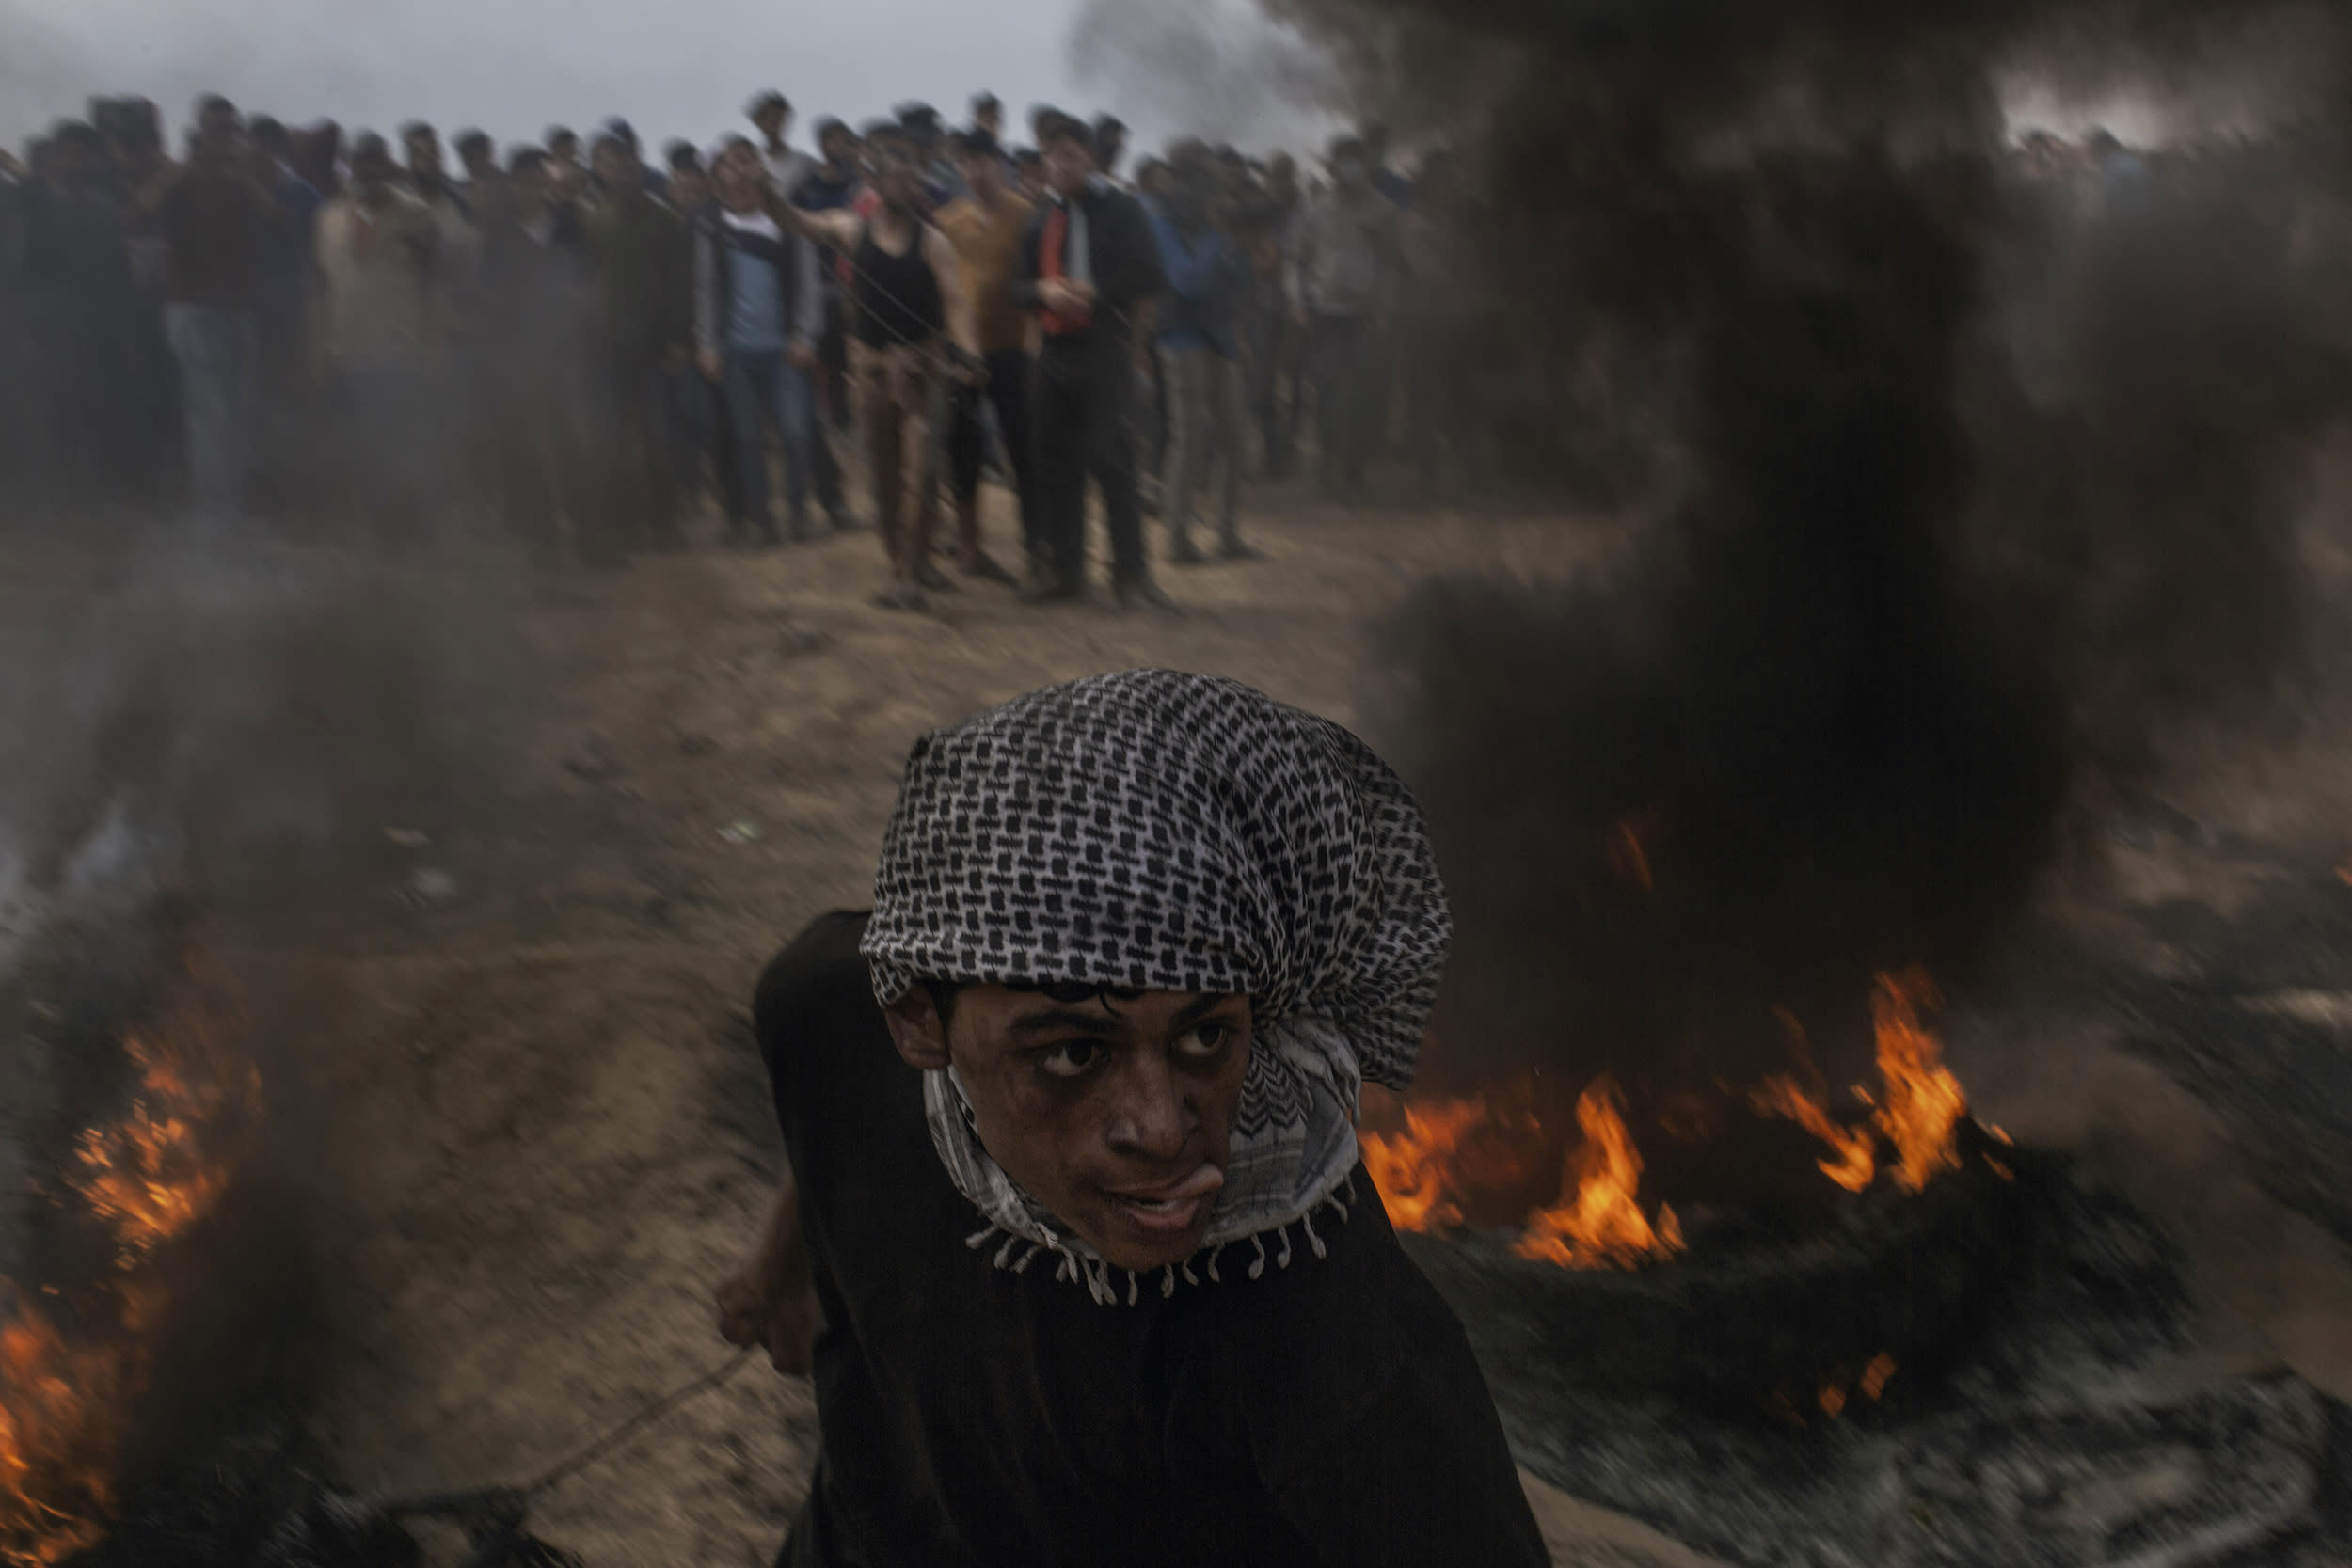 "<p>A Palestinian demonstrator is seen during the ""Great March of Return"" protests at Eastern Gaza City's border on April 20, 2018. The ""Great March of Return"" is a public wave of protests, a civil movement aimed to break the Israeli siege of the Gaza Strip and to uphold the Palestinian right to return to their homeland. (Photo: Fabio Bucciarelli for Yahoo News) </p>"